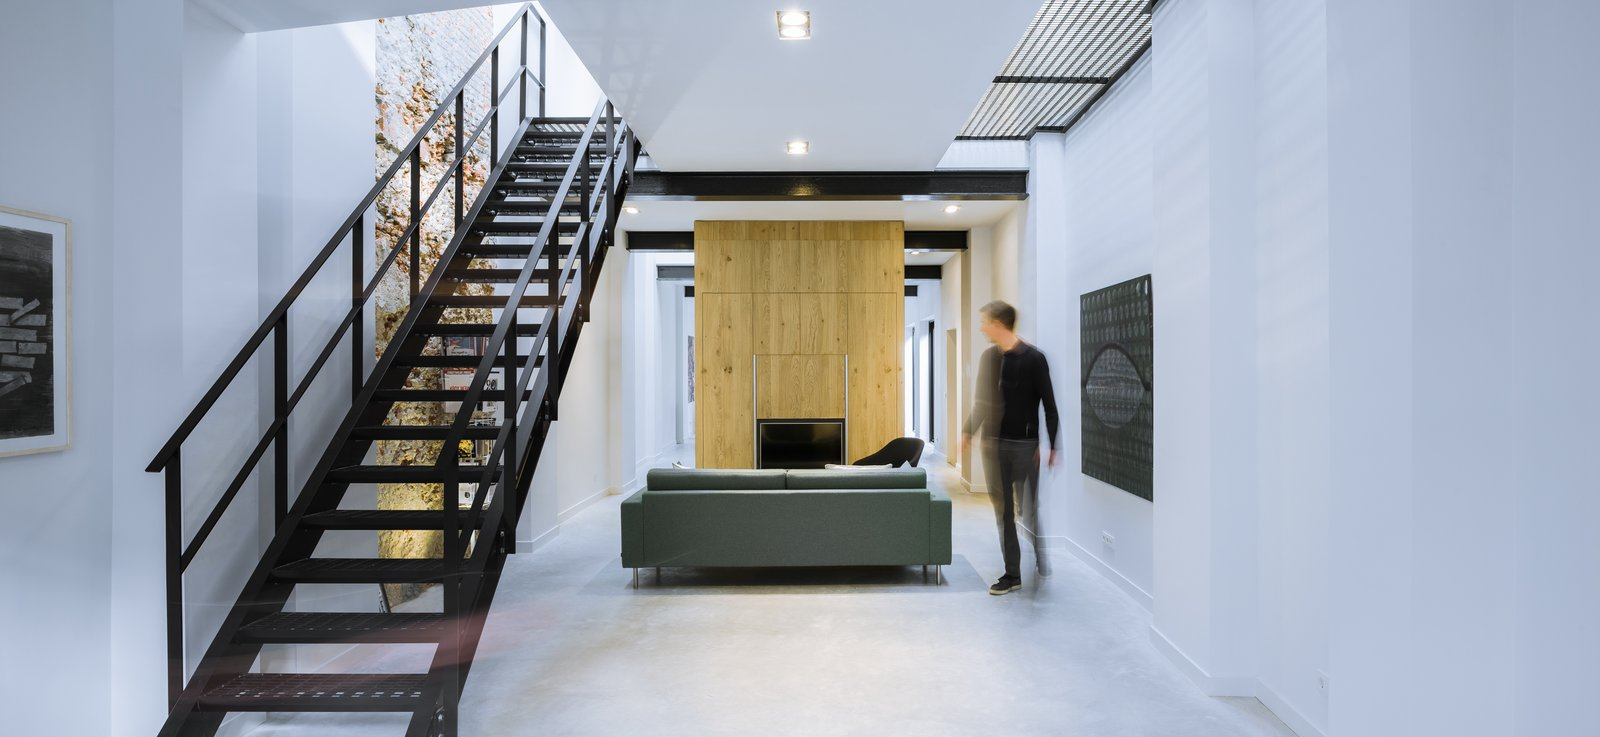 Living Room, Recessed Lighting, Sofa, Concrete Floor, Storage, and Chair An industrial style steel staircase gives the space a cool Manhattan warehouse look.  Best Photos from A 19th-Century Dutch Workshop Is Now a Stunning, Spacious Loft